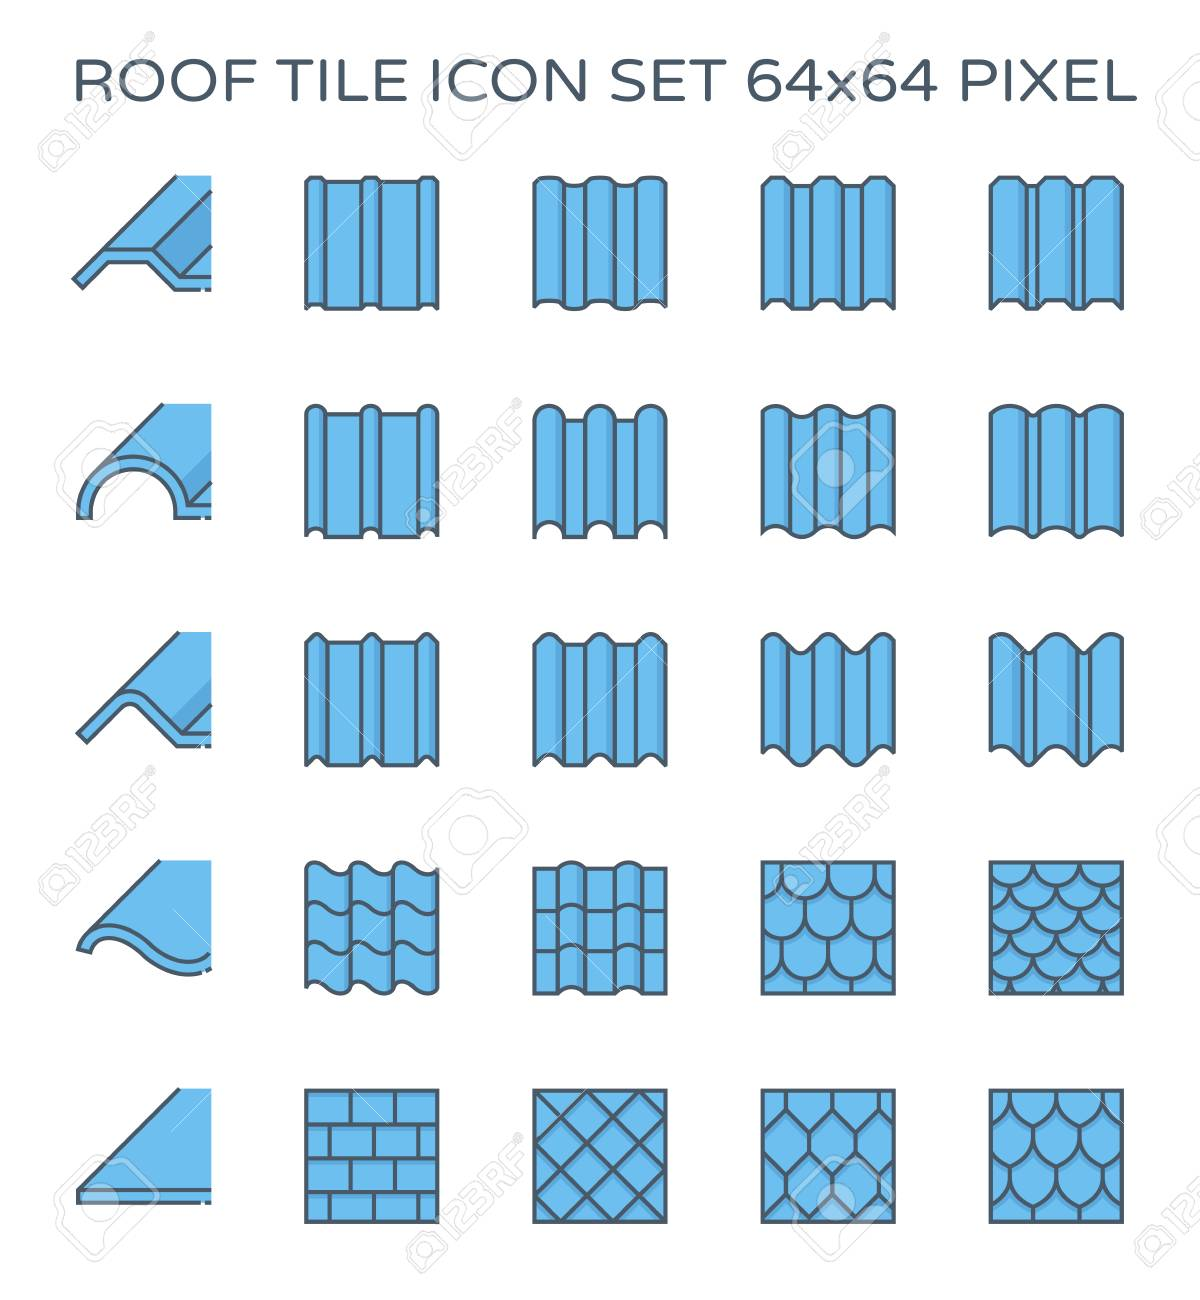 Roof tile icon set, 64x64 perfect pixel and editable stroke. - 112299455